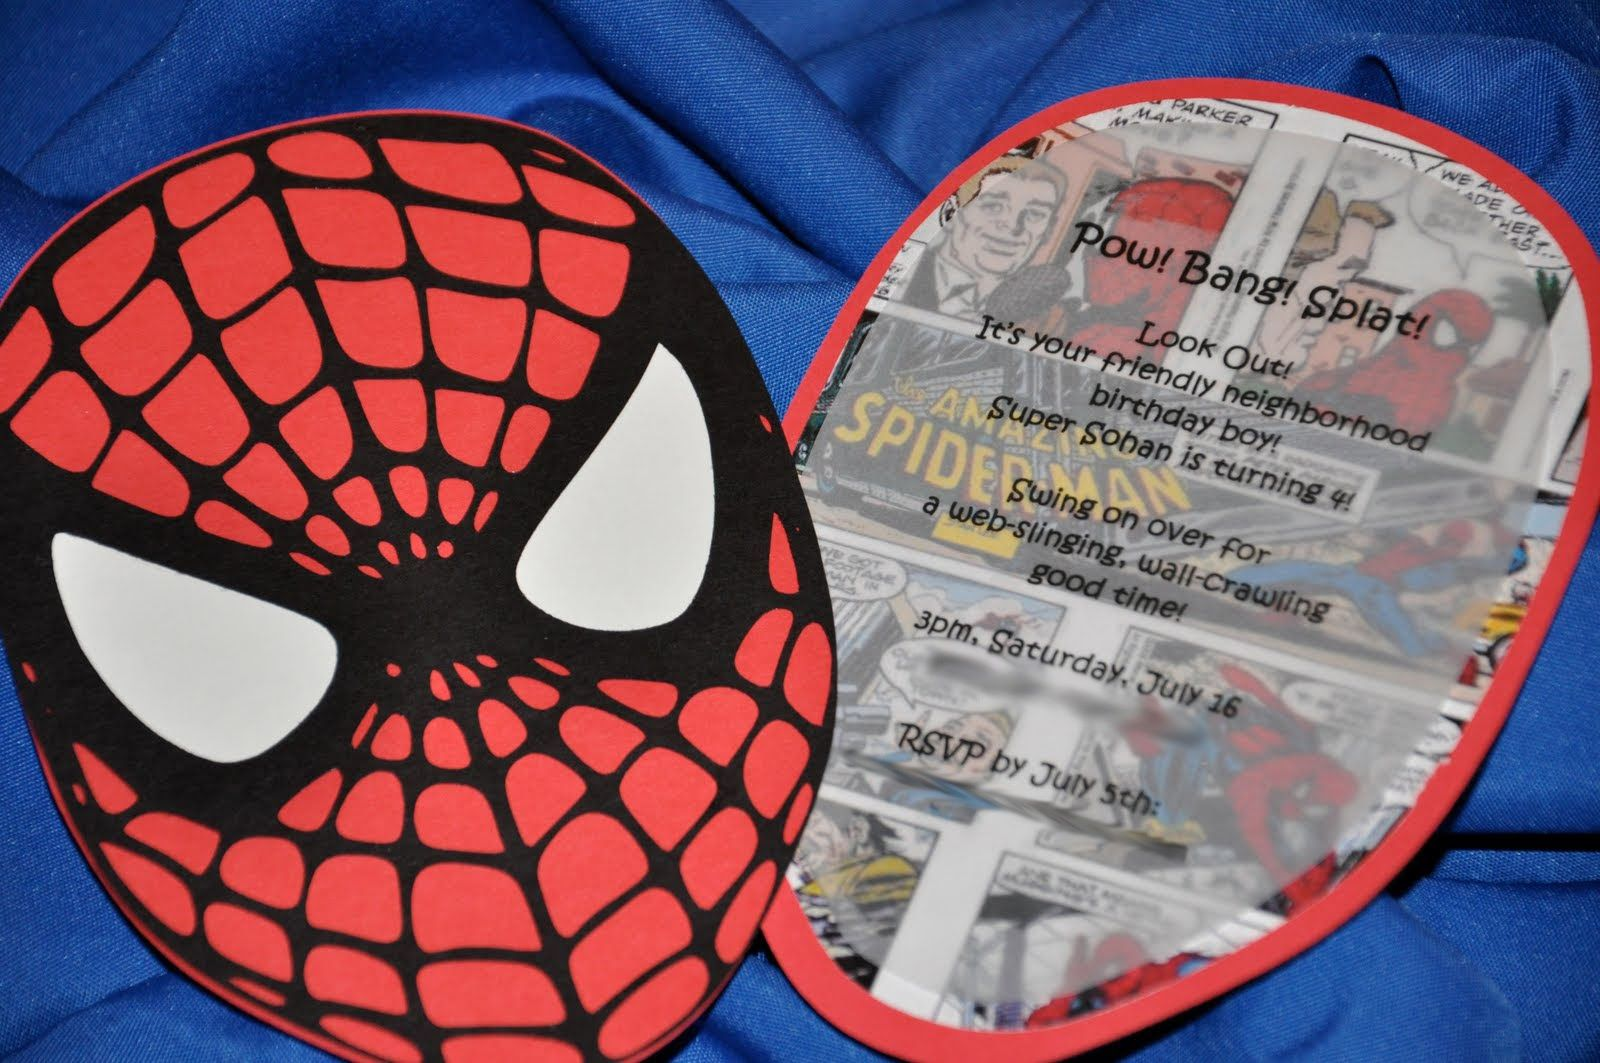 Spiderman personalized birthday party invite by nikkisinvitations spiderman personalized birthday party invite by nikkisinvitations party things pinterest party things spiderman birthday invitations and birthdays solutioingenieria Images